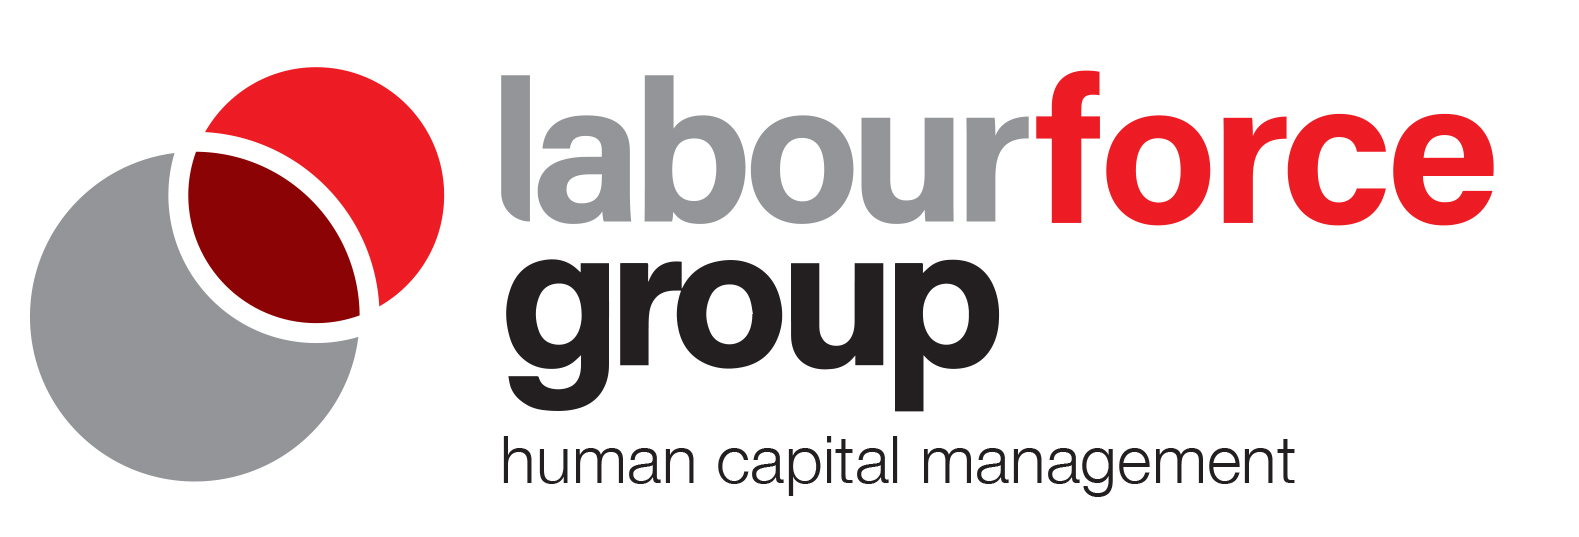 Labourforce Group